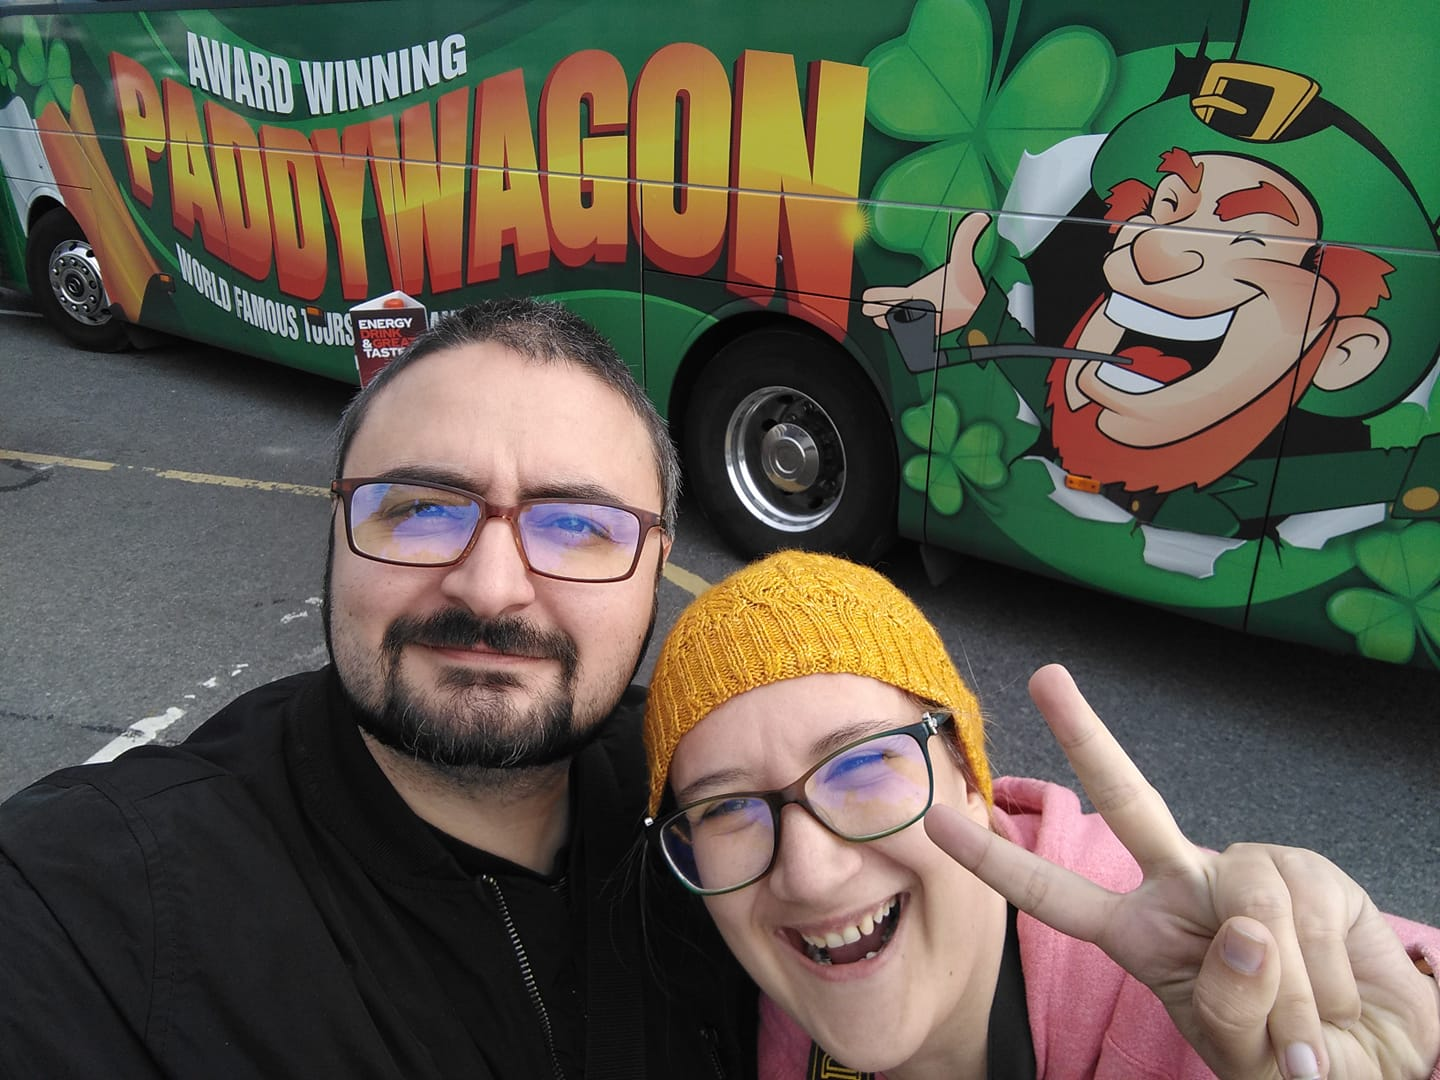 Our vacation in Ireland